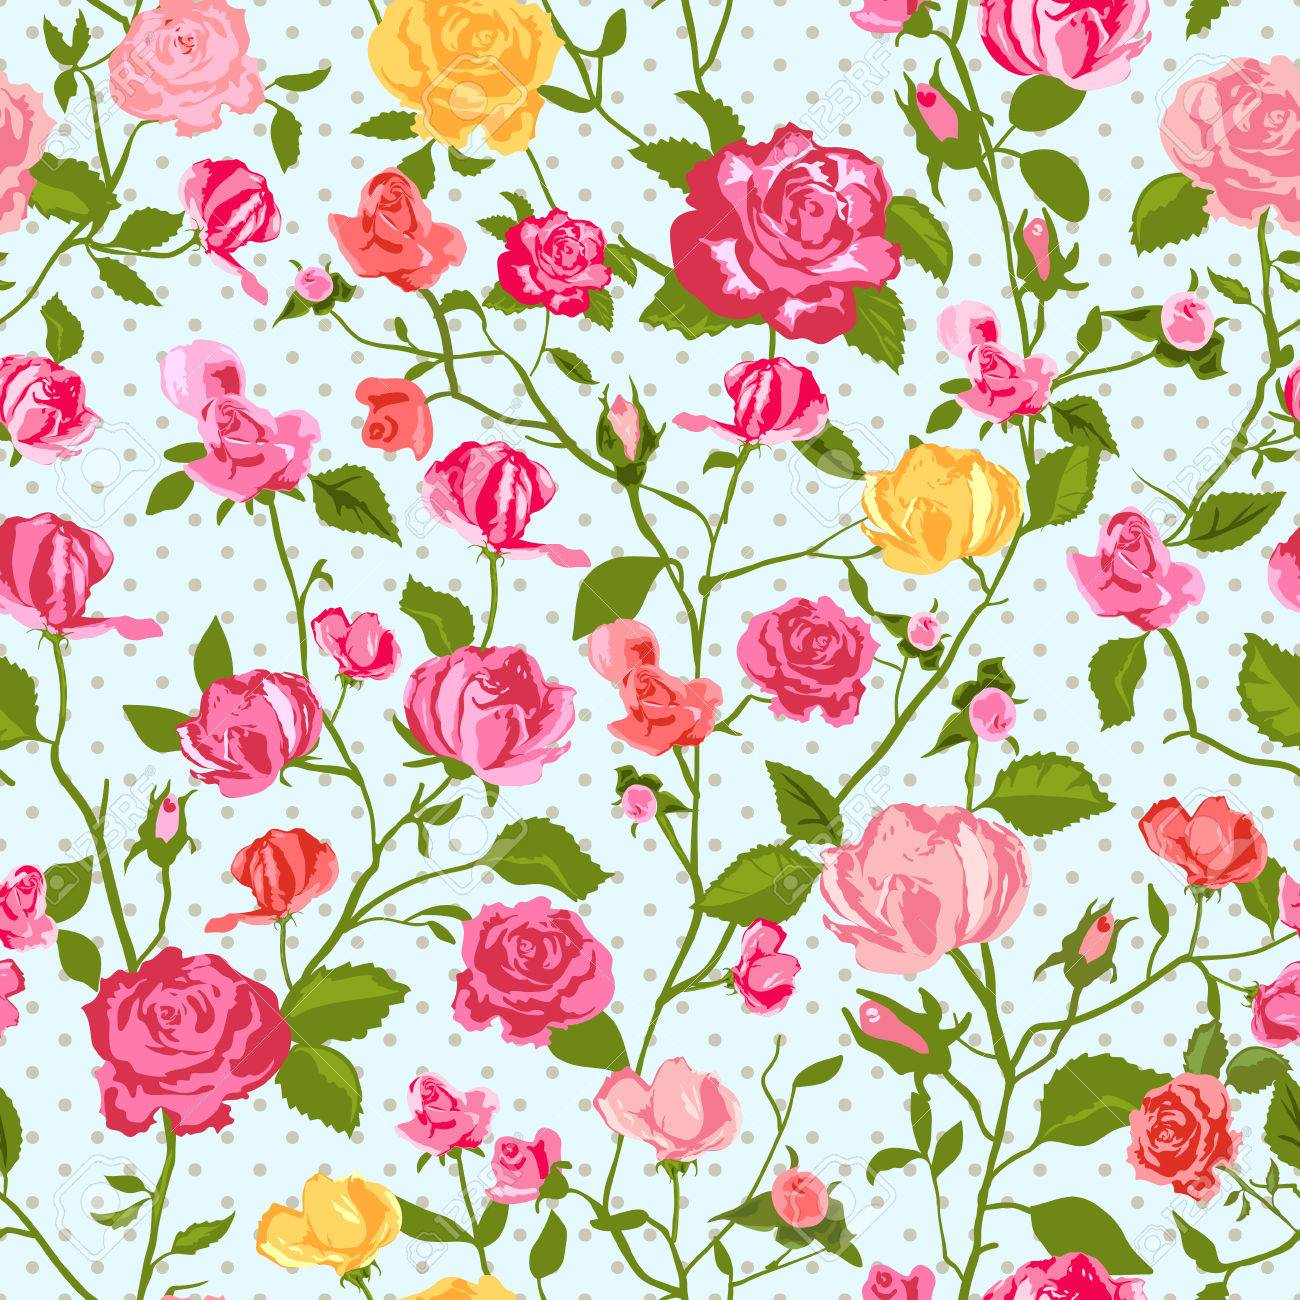 Astonishing Shabby Chic Rose Pattern And Seamless Background Ideal For Printing Interior Design Ideas Lukepblogthenellocom